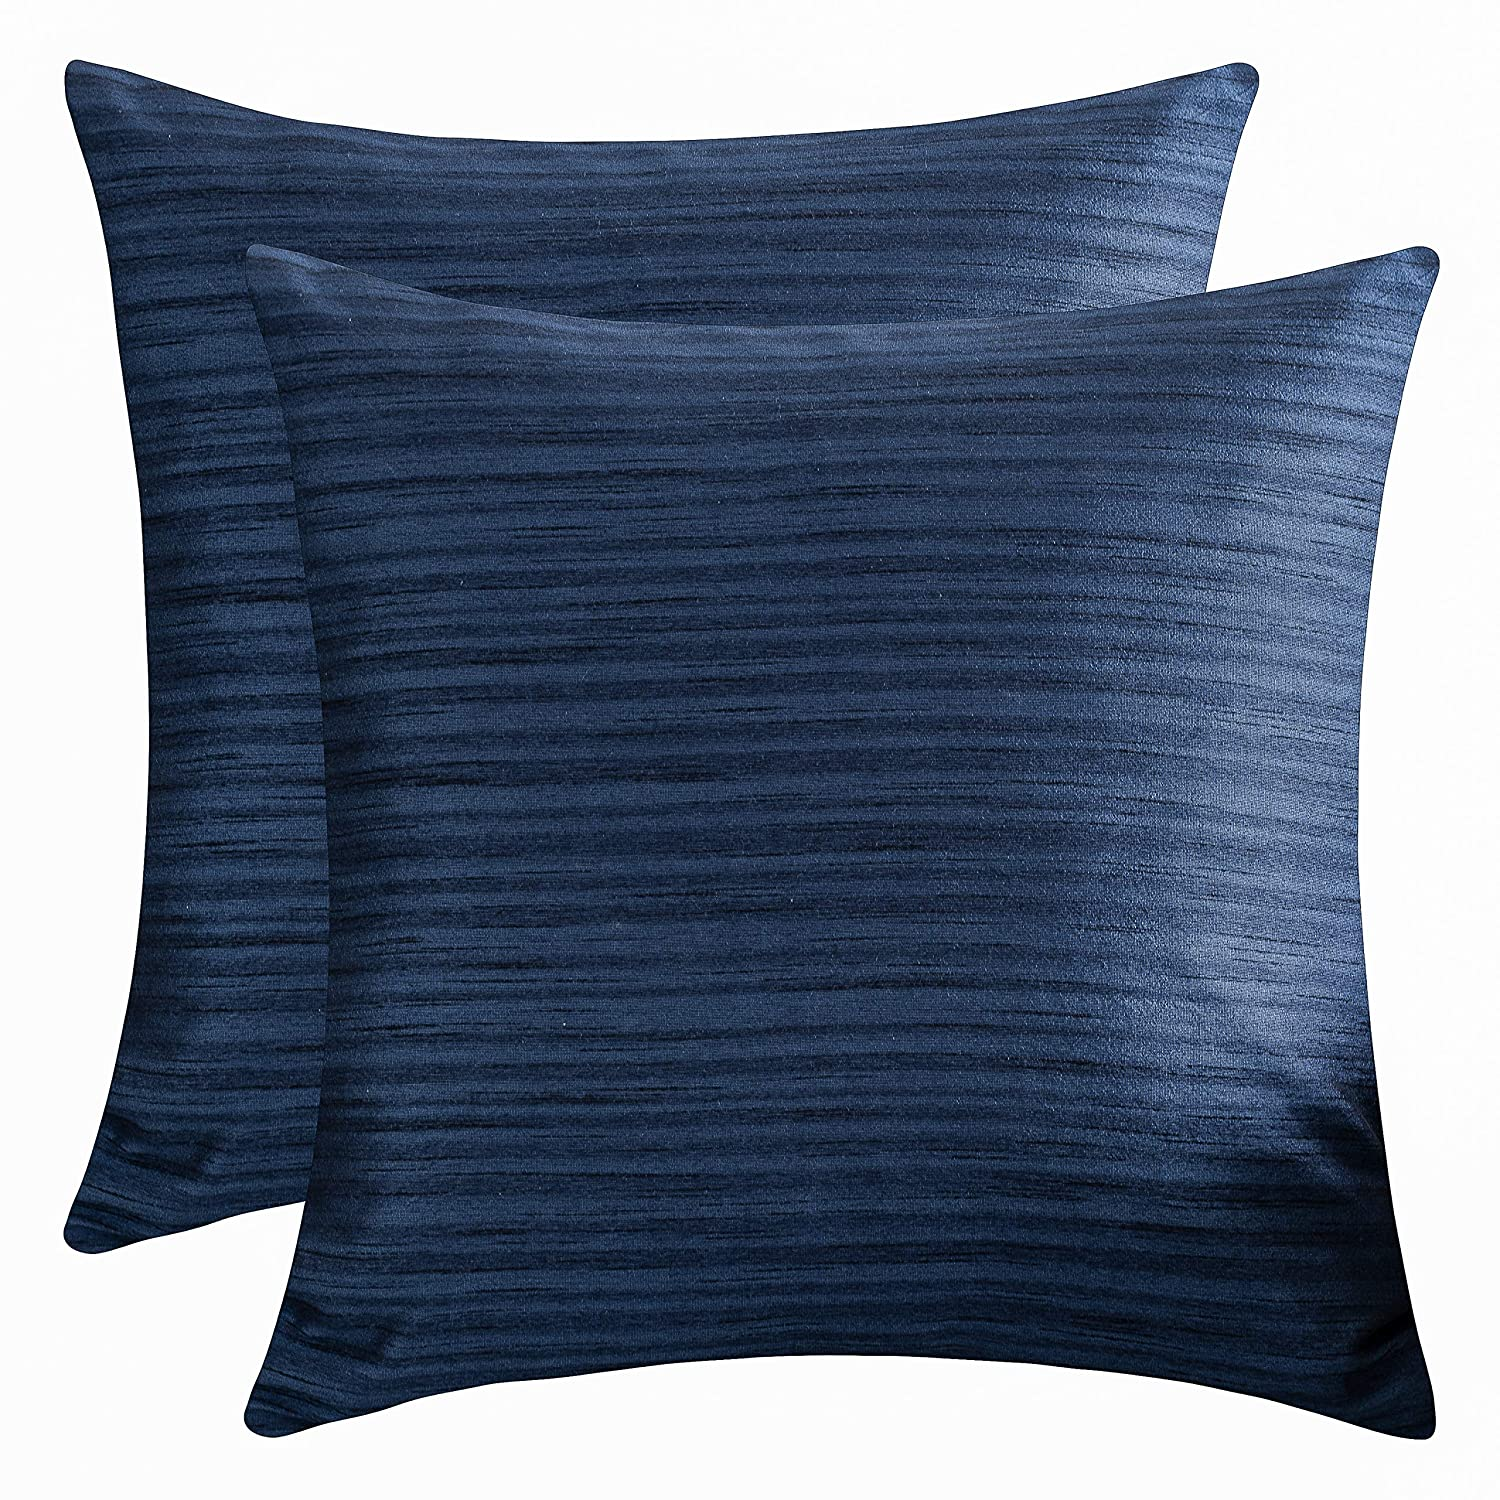 Amazoncom The White Petals Navy Blue Throw Pillow Covers Faux